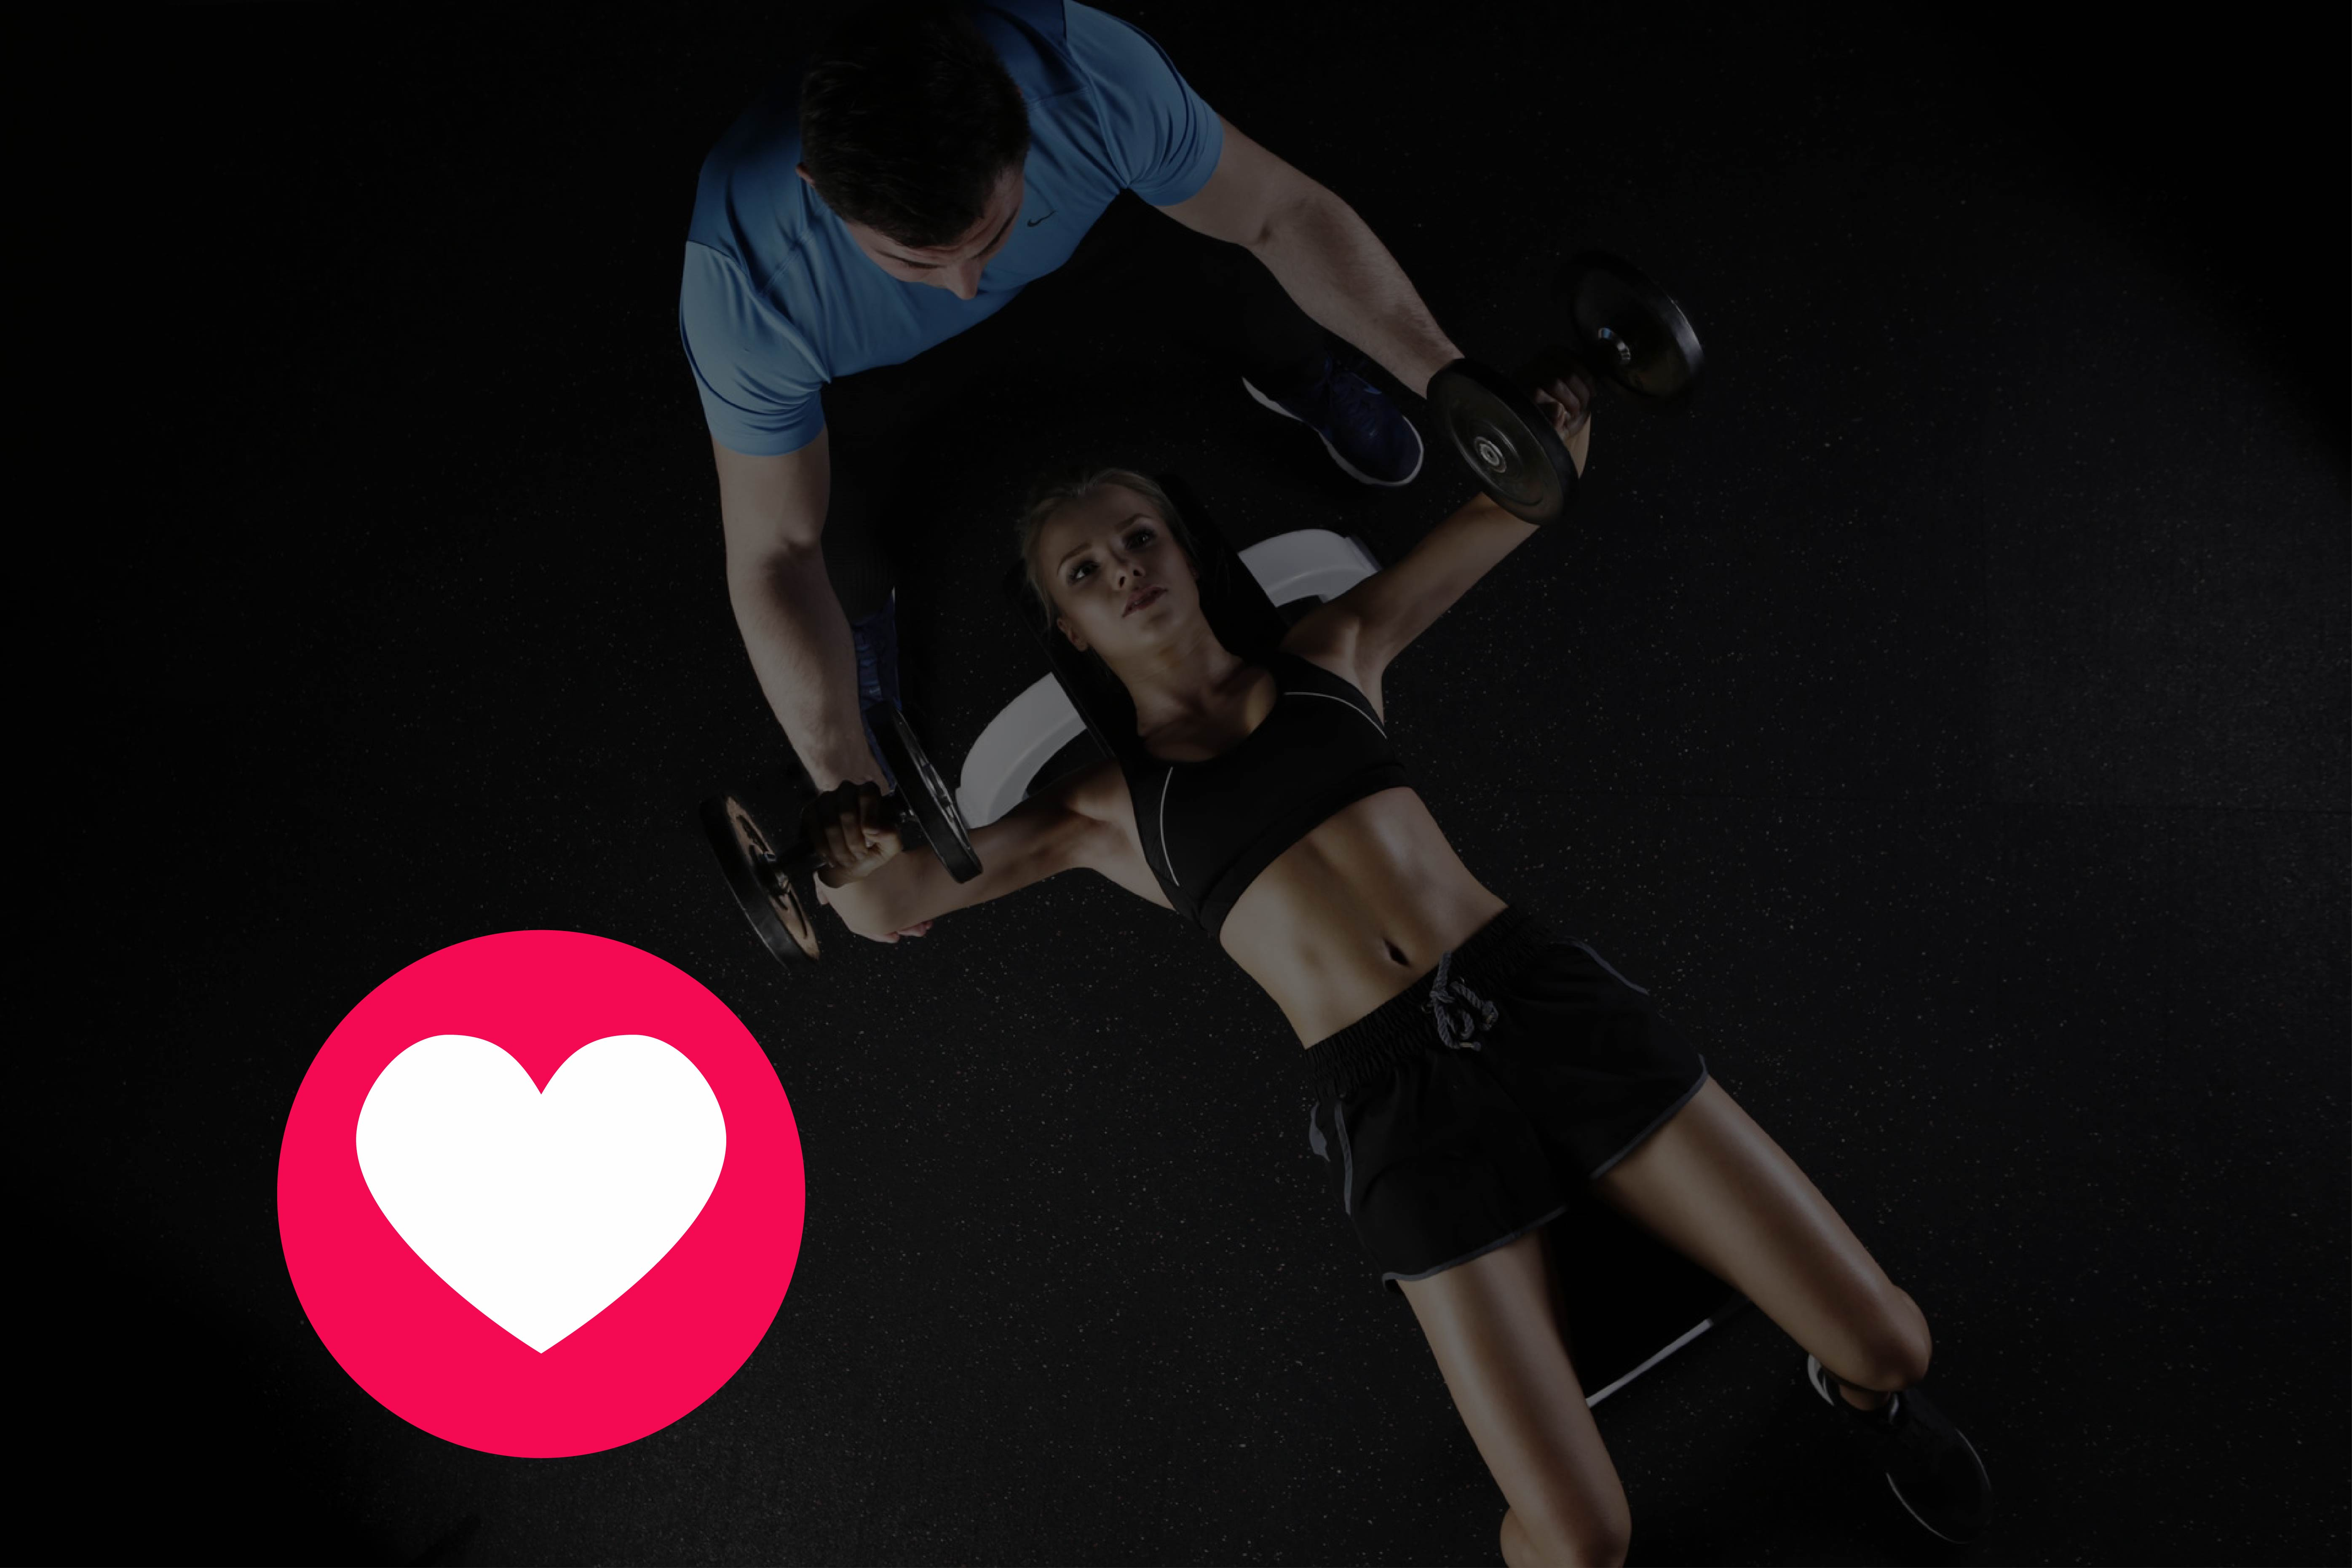 7500 Health and Fitness articles